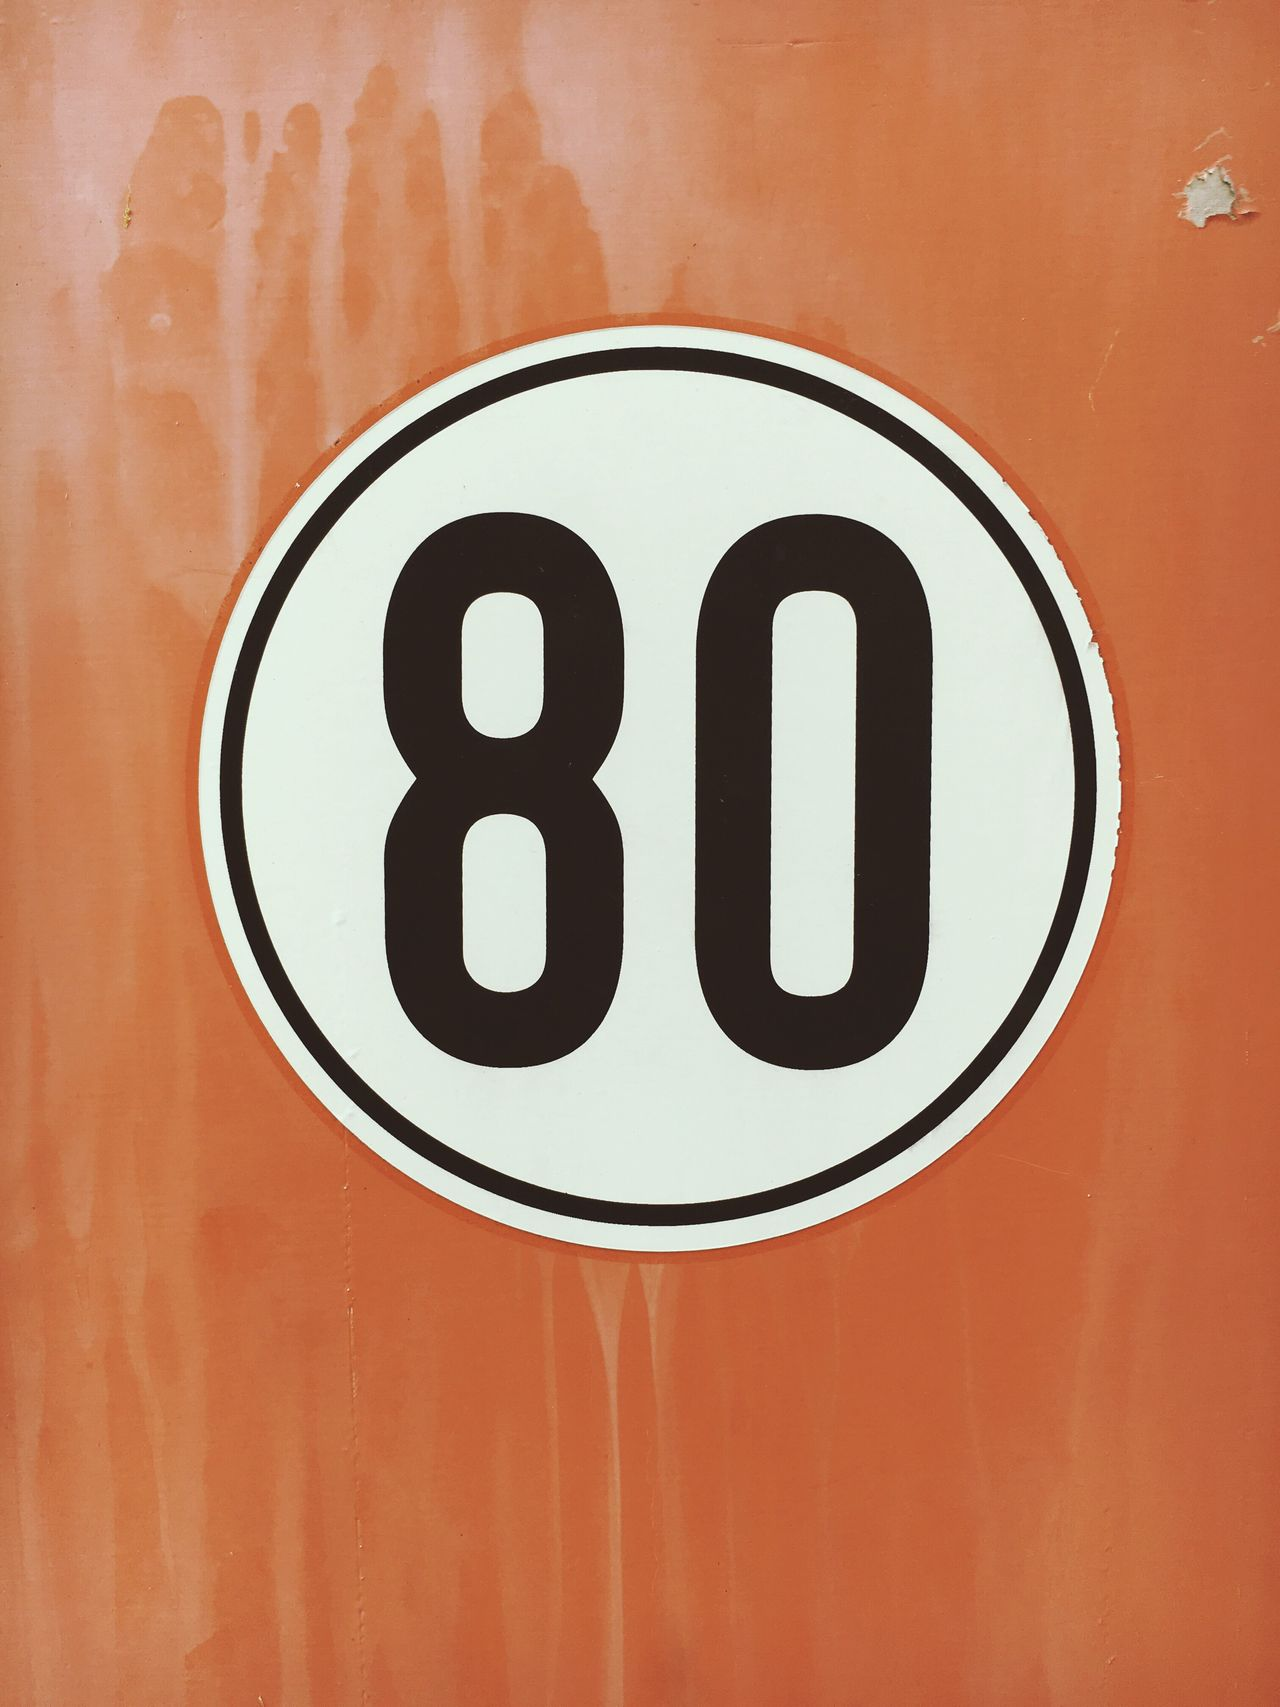 80 Eighty Communication Close-up Number No People Day Architecture Indoors  Wall Sign Signs